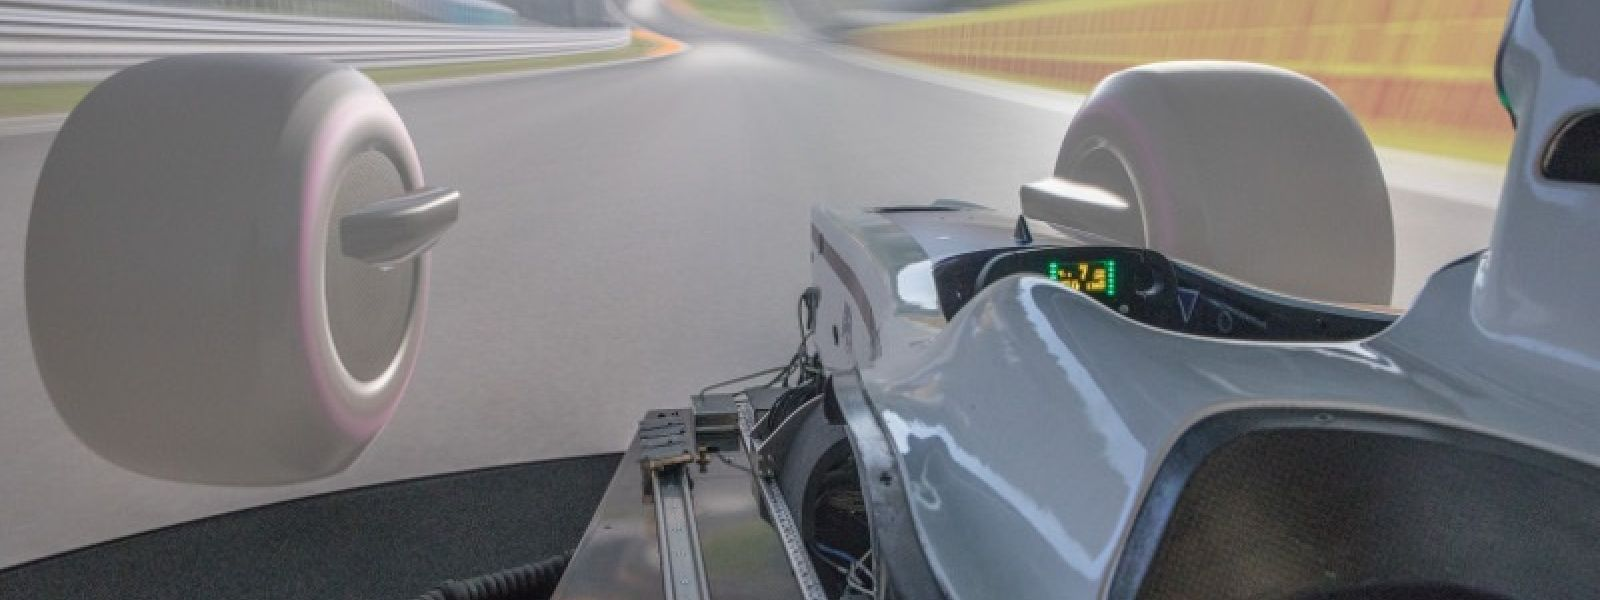 Vehicle Driving Simulator For Motorsport Applications